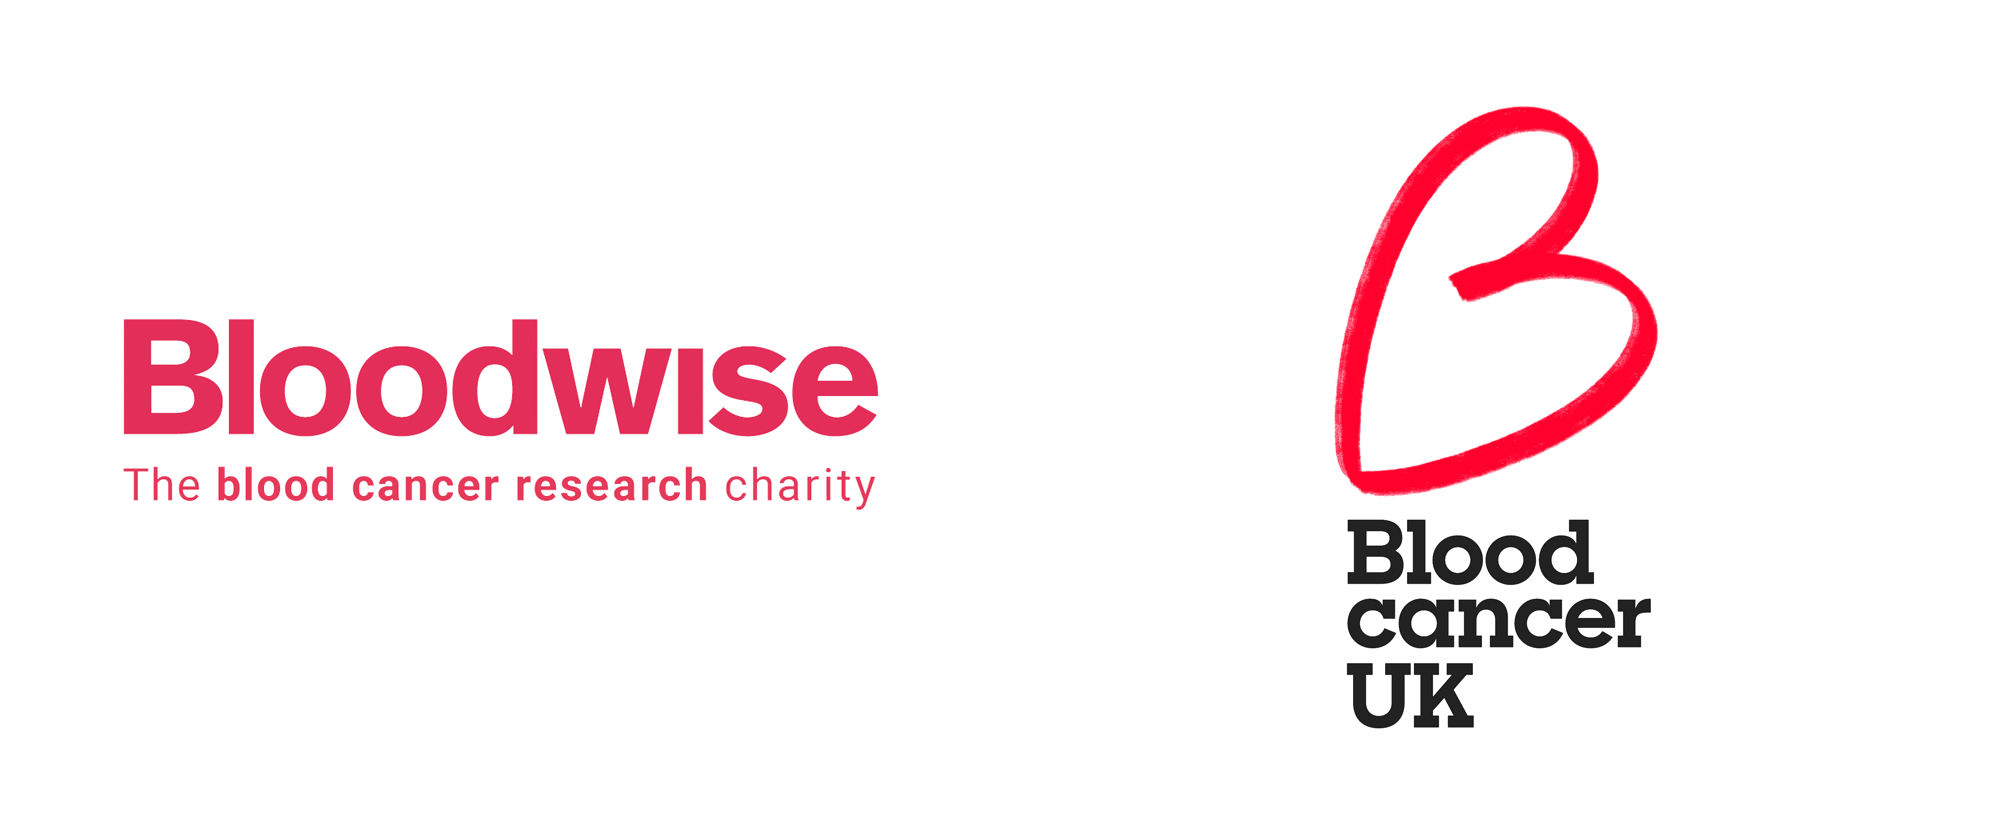 New Logo and Identity for Blood Cancer UK by Pentagram